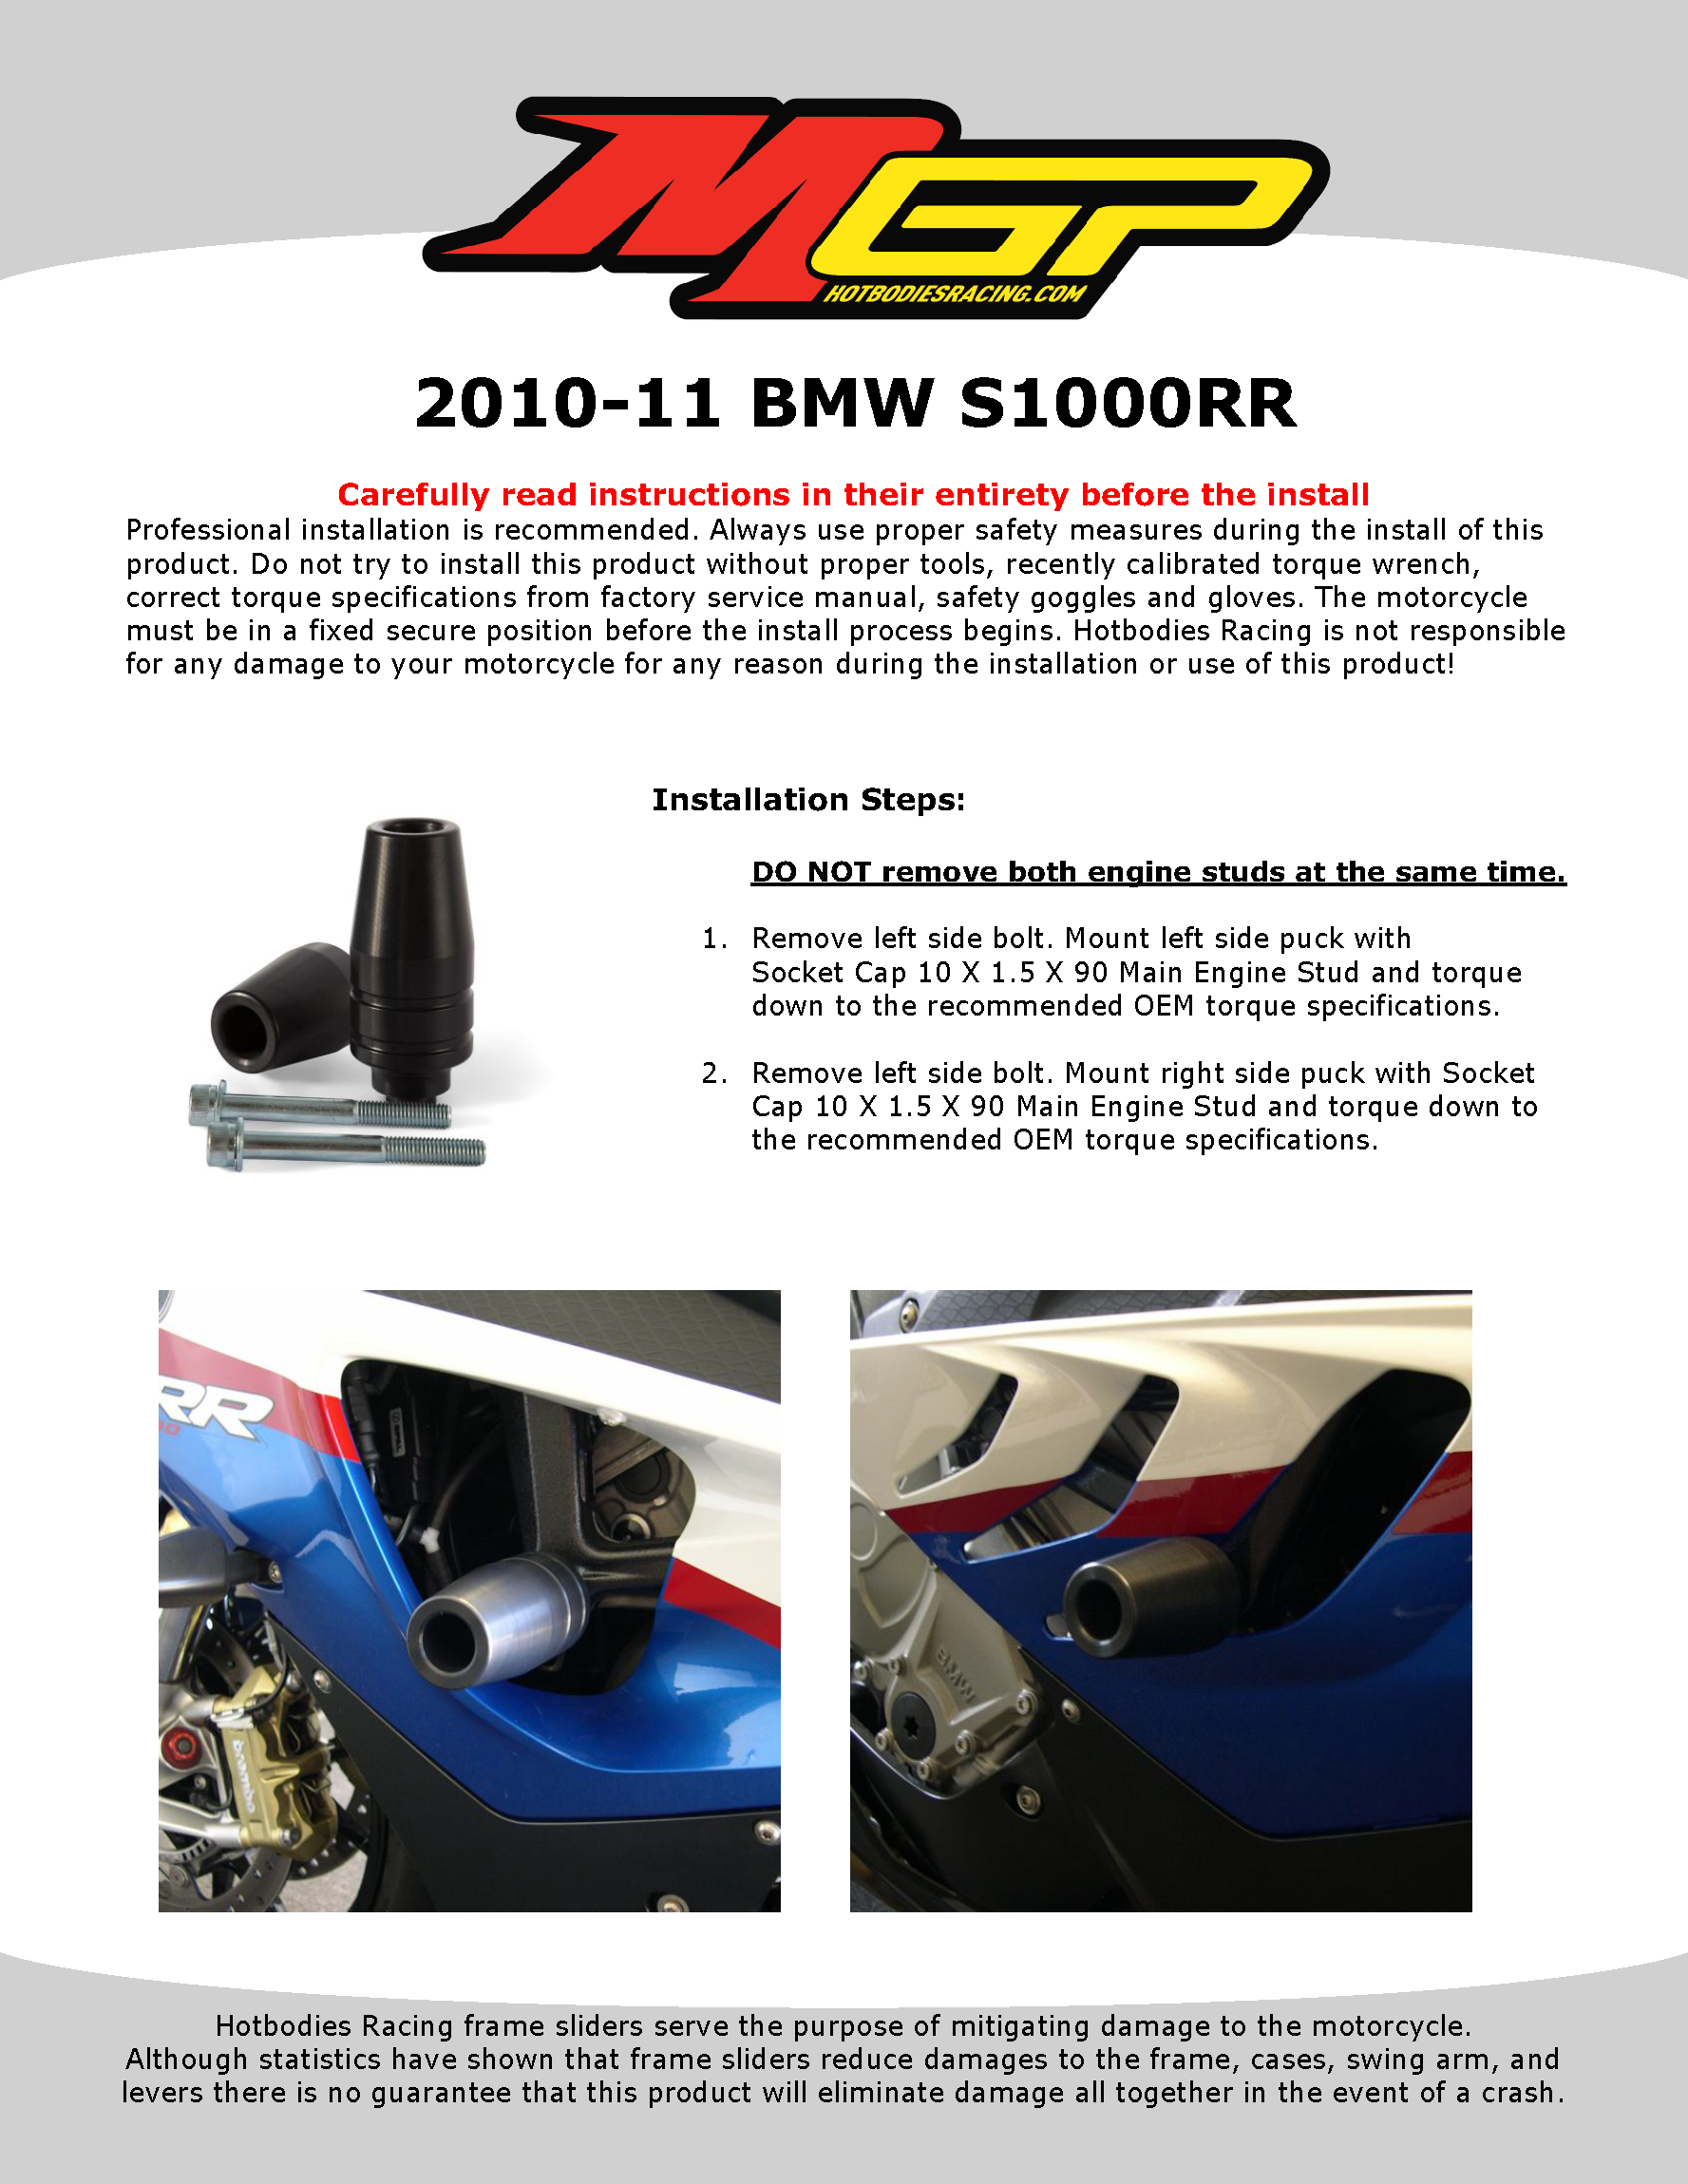 S1000RR 2010-11 NO CUT Frame Sliders